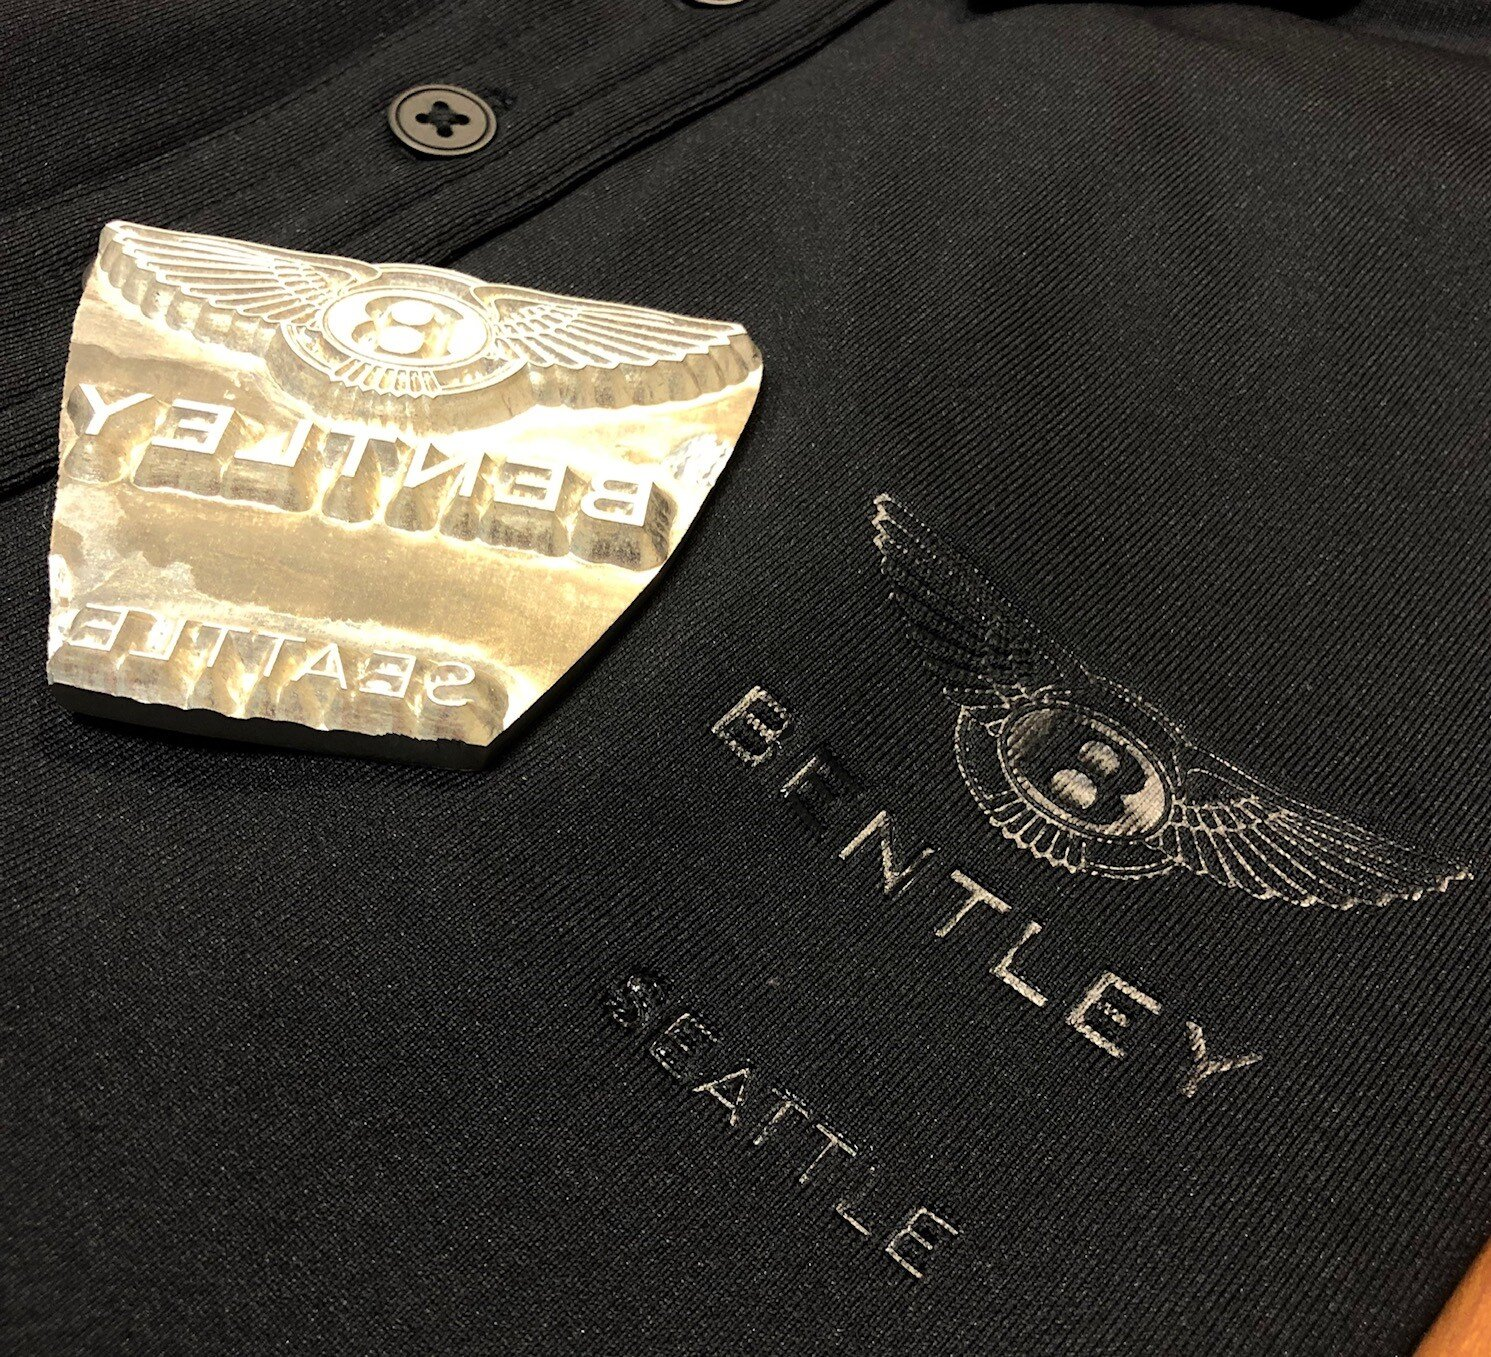 logounltd_laser_etching_embroidery_screen_printing_apparel_uniform_custom_tshirts_t_shirt_kirkland_bellevue_seattle_redmond_woodinville_branded_merchandise_promotional_products_logo_unltd_deboss_bentley (1).jpg